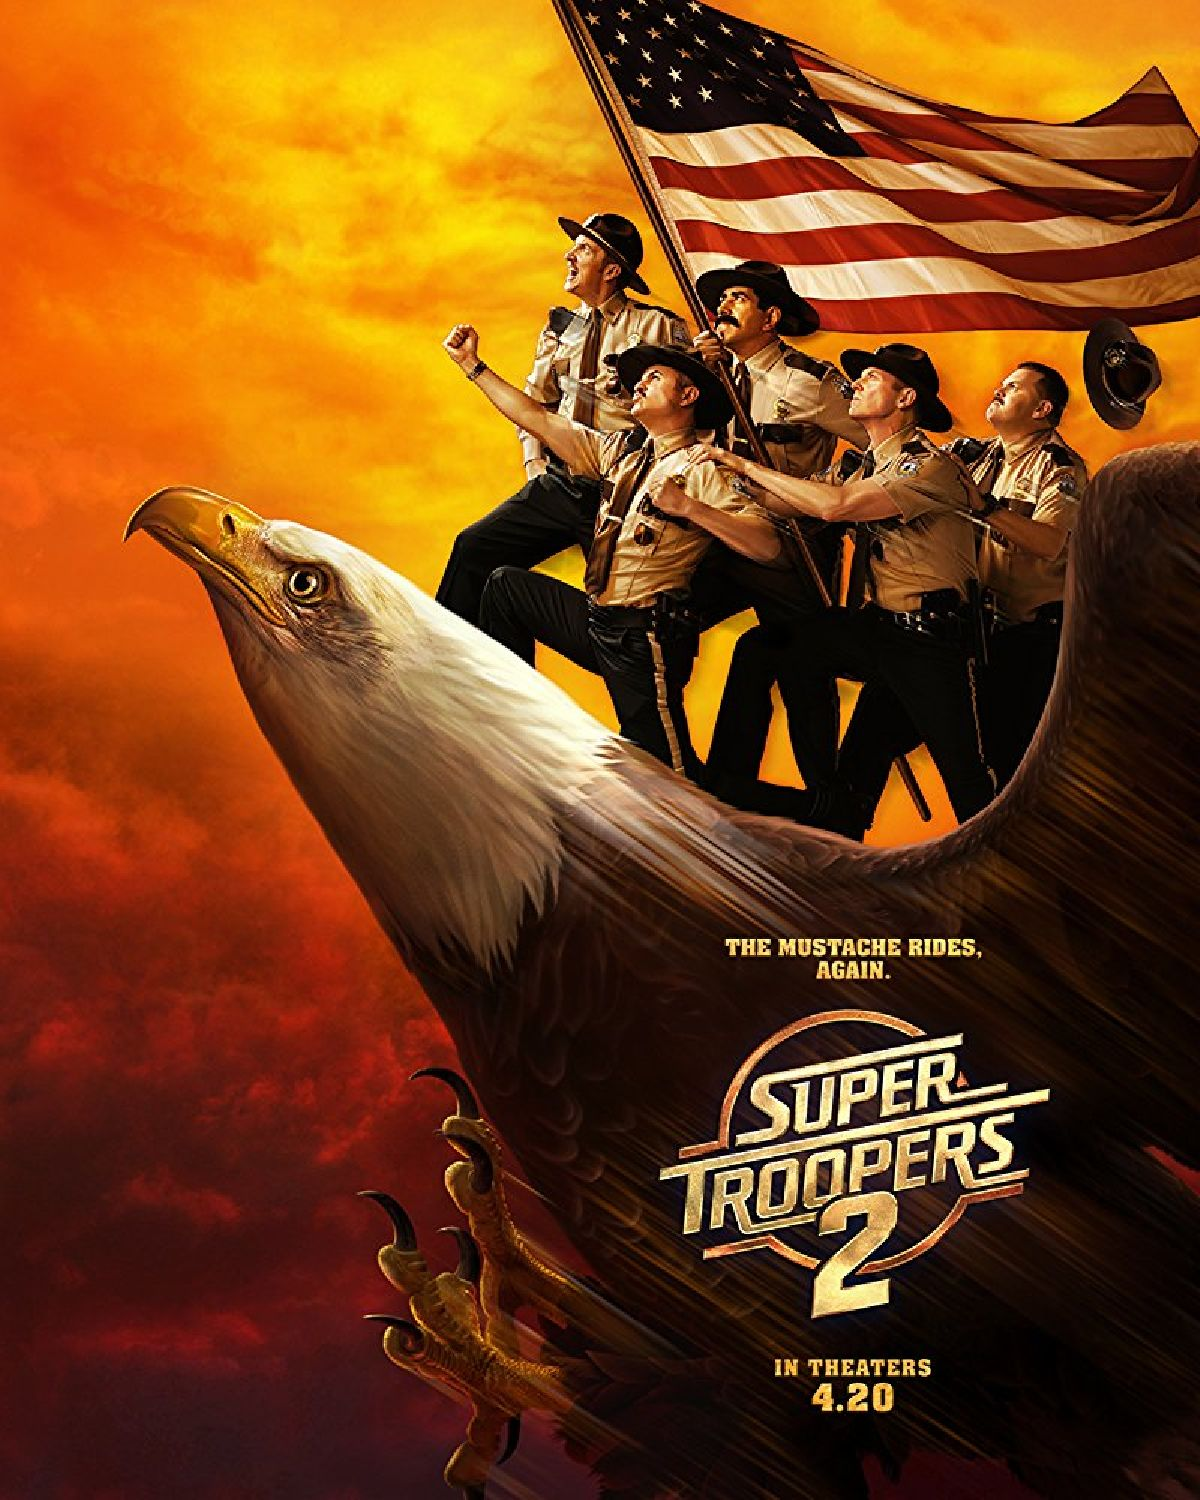 'Super Troopers 2' movie poster